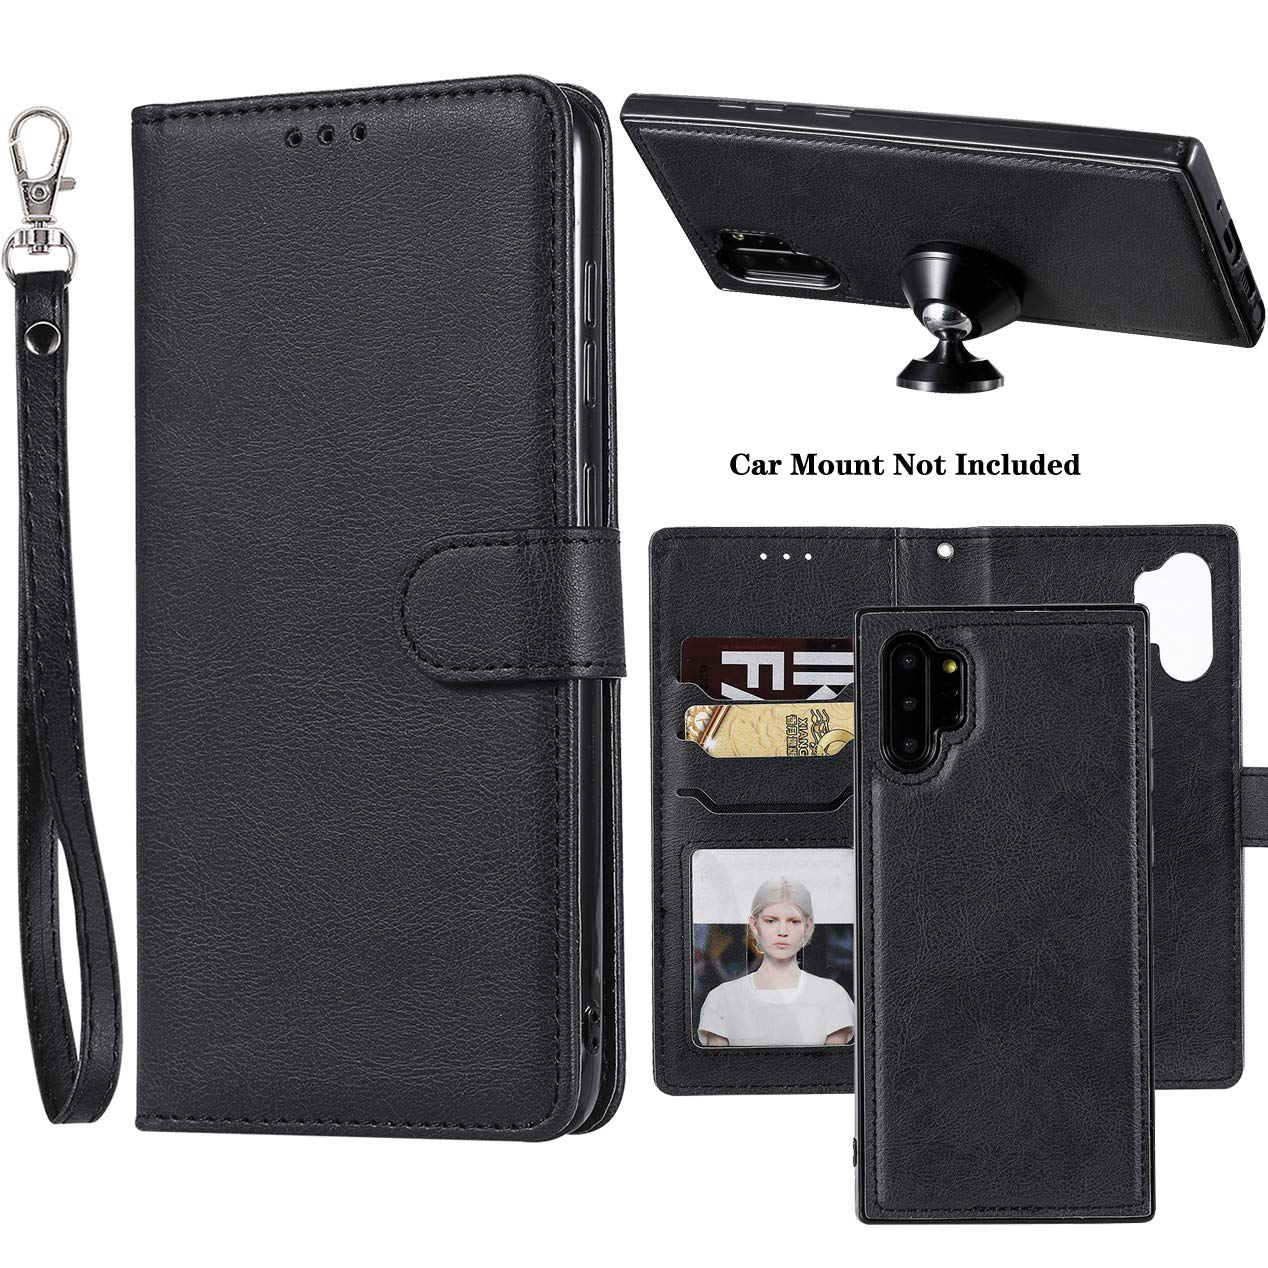 Galaxy Note 10 Plus Case, Ranyi Detachable Wallet Case [Magnetic Cover Fit Car Mount] Credit Card Holder Slots 2 in 1 Leather Flip Folio Wallet Case for Samsung Galaxy Note 10+ Plus/Pro/5G (Black) by Ranyi